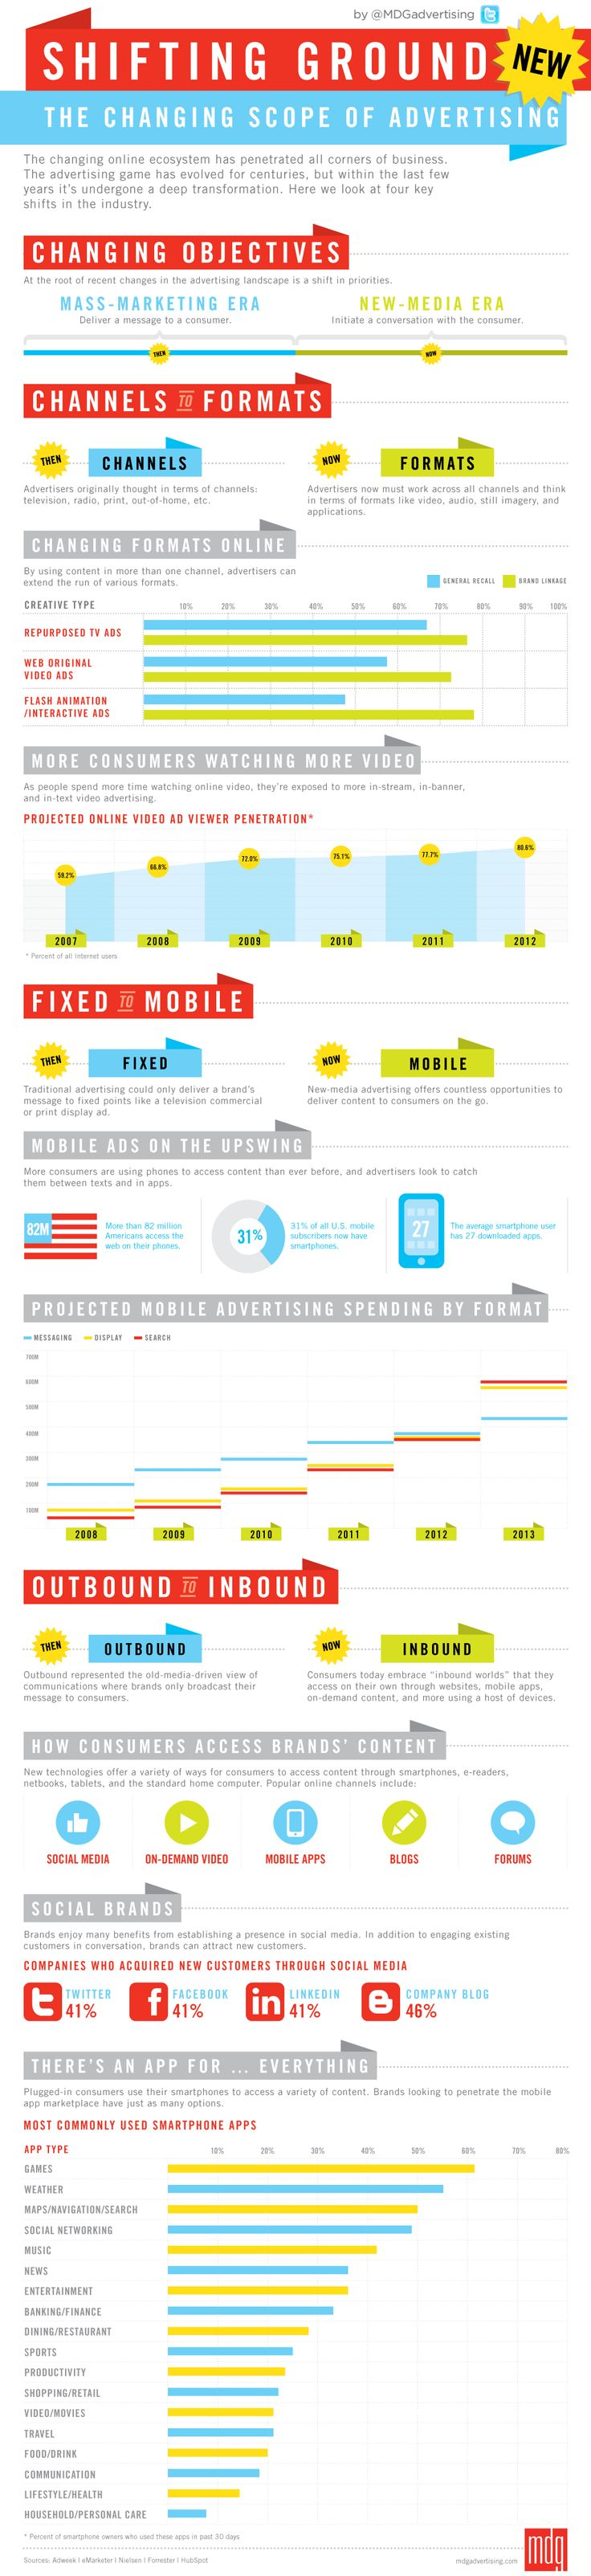 Advertising-Infographics-The-Changing-Scope-of-Advertising-Infographic Advertising Infographics : The Changing Scope of Advertising [Infographic